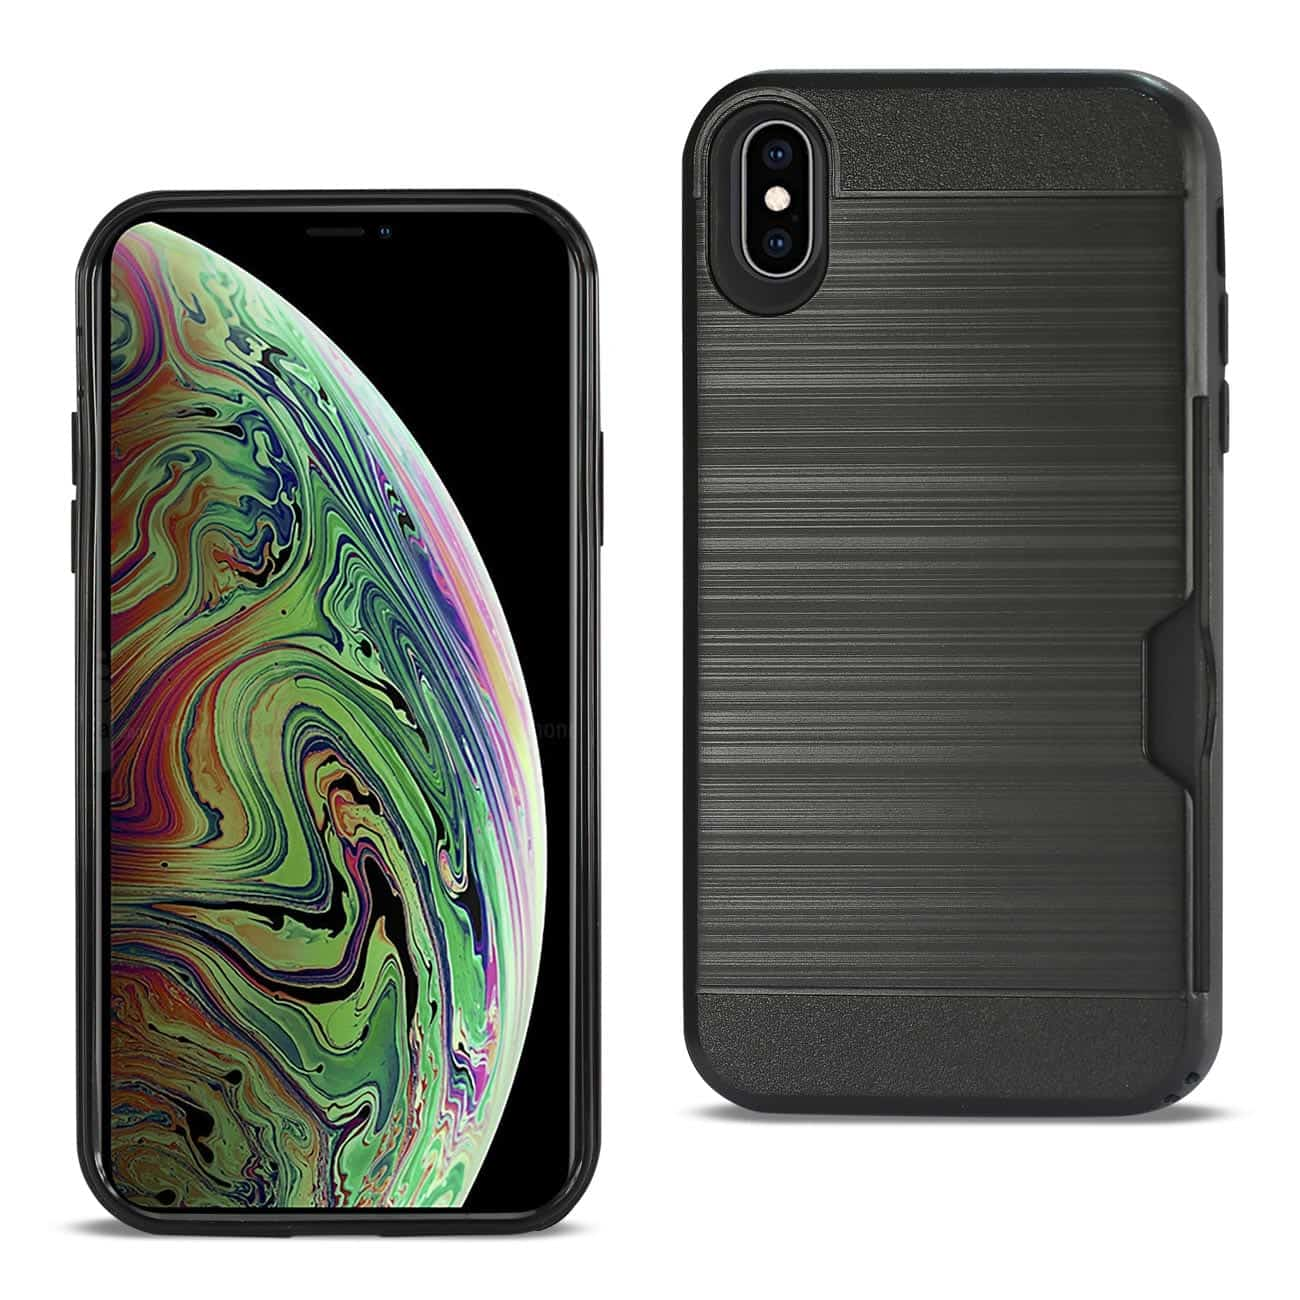 iPhone XS Max Slim Armor Hybrid Case With Card Holder In Black